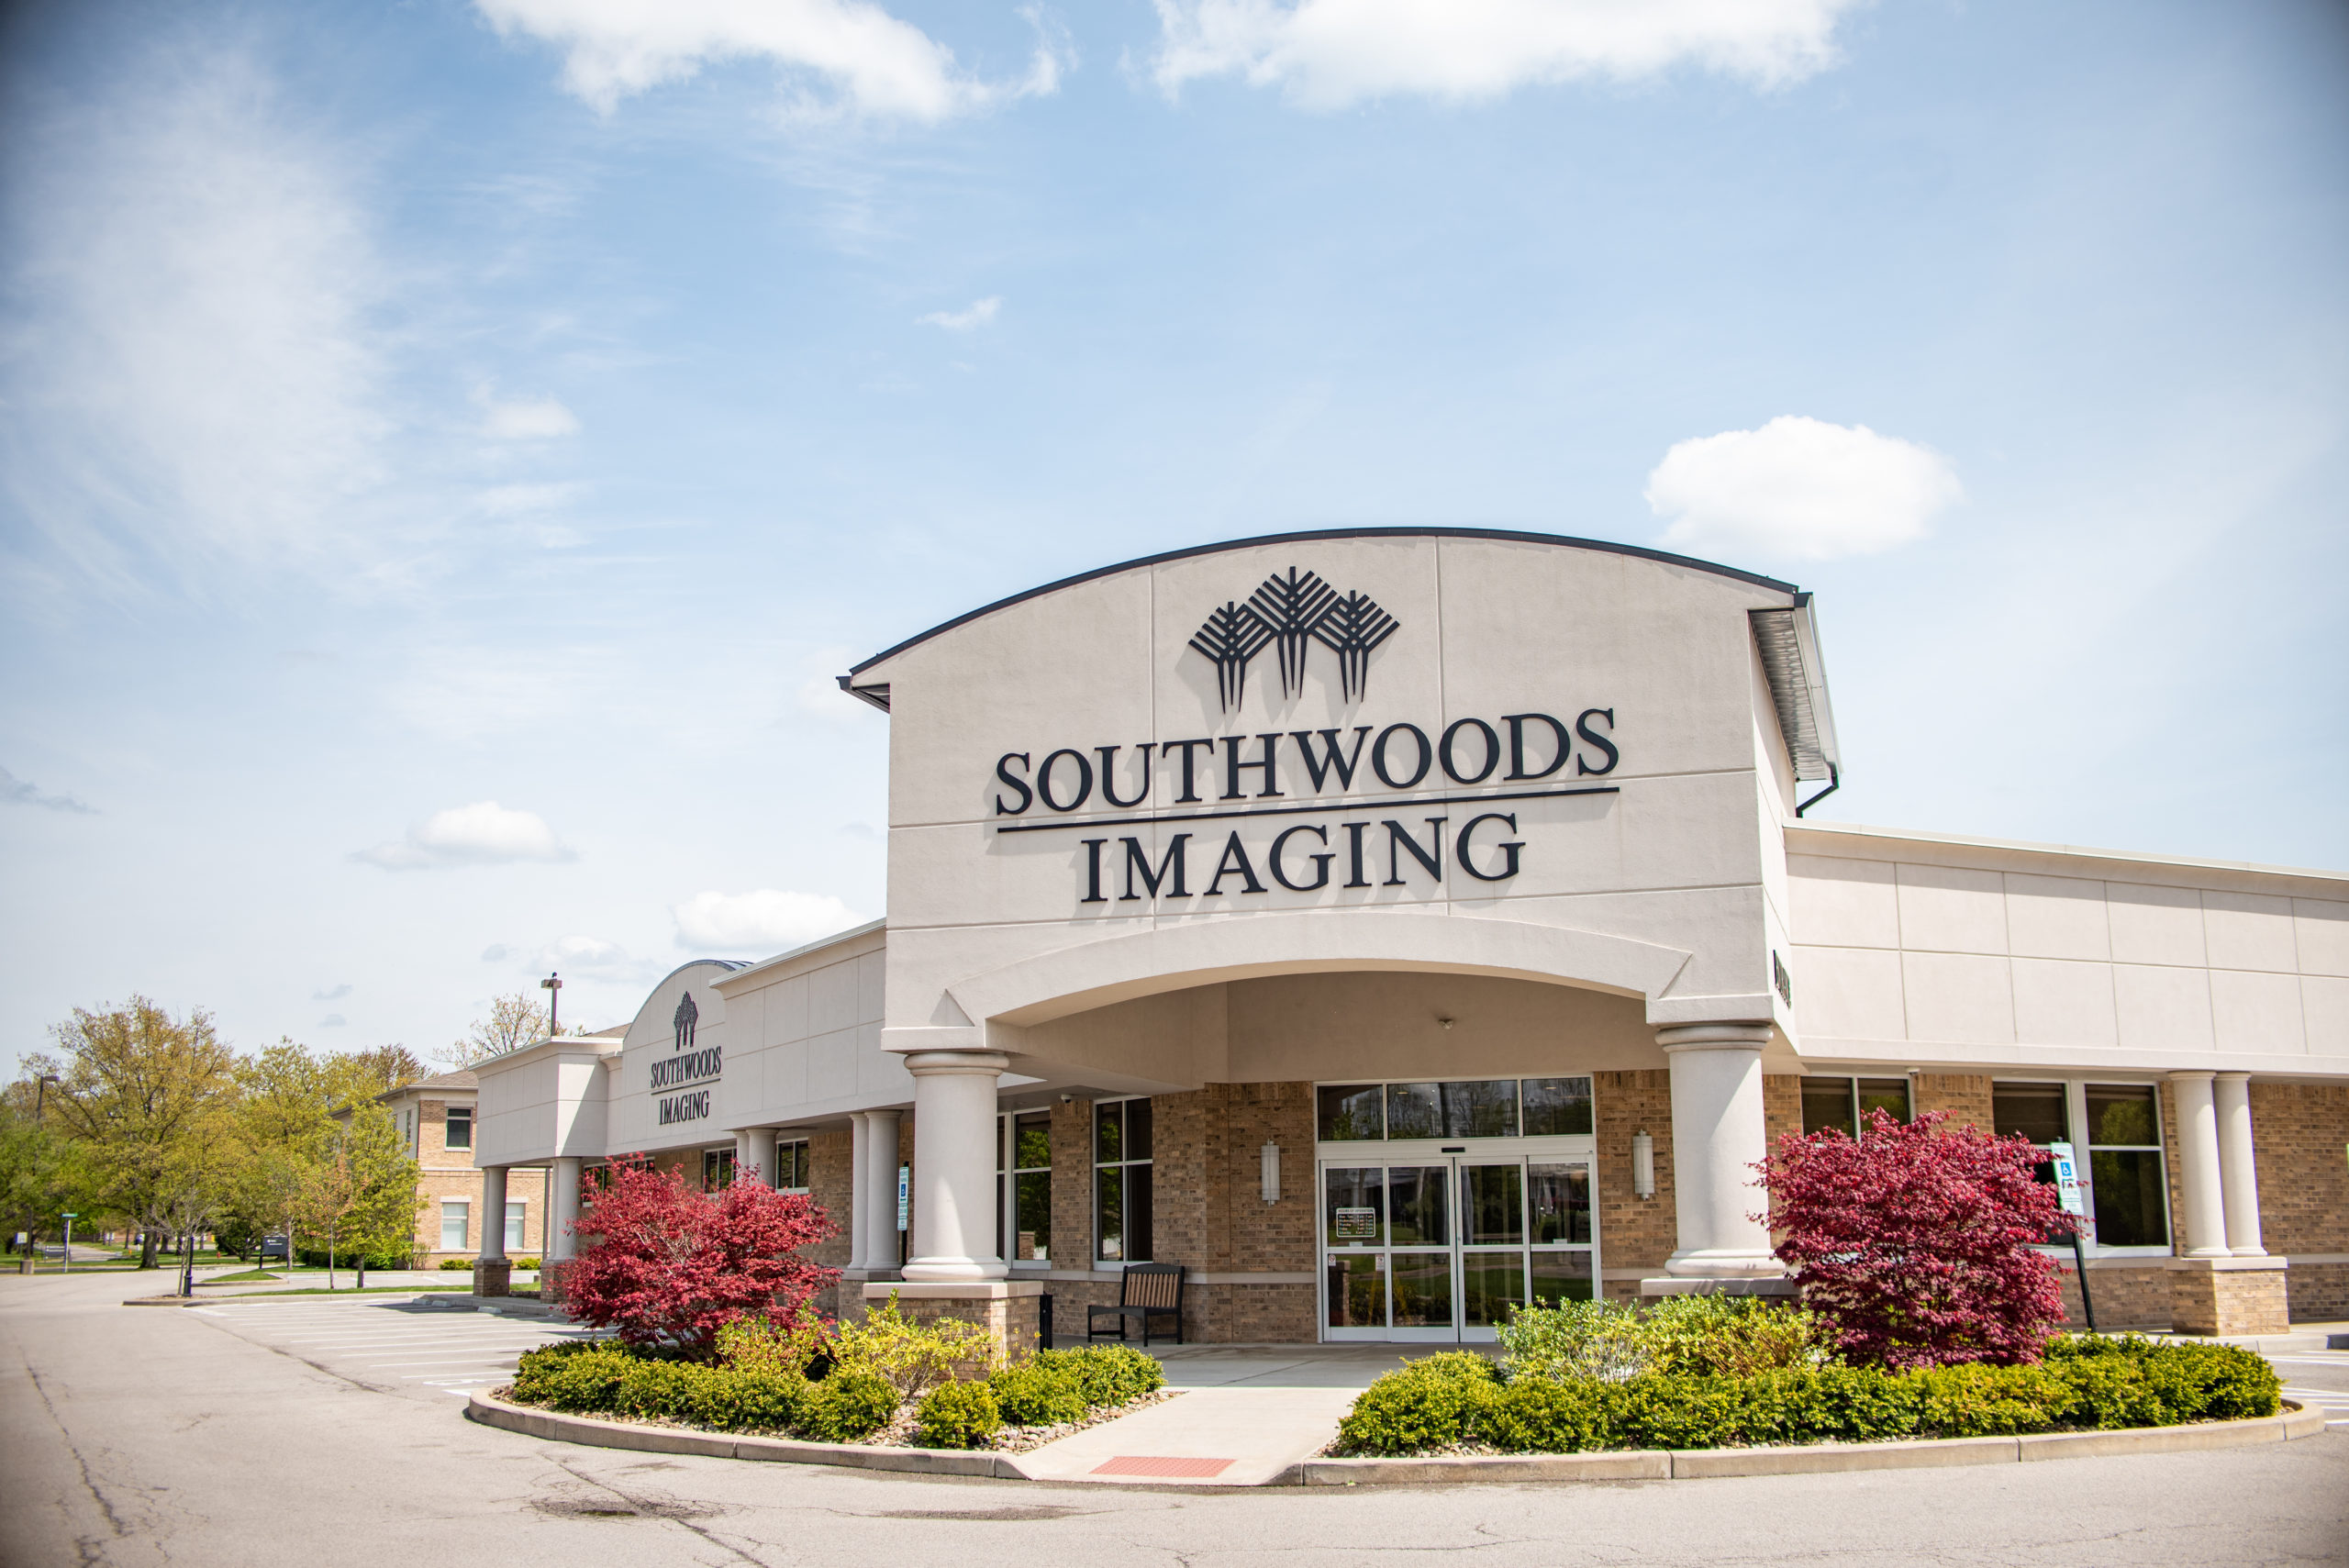 Southwoods imaging entrance